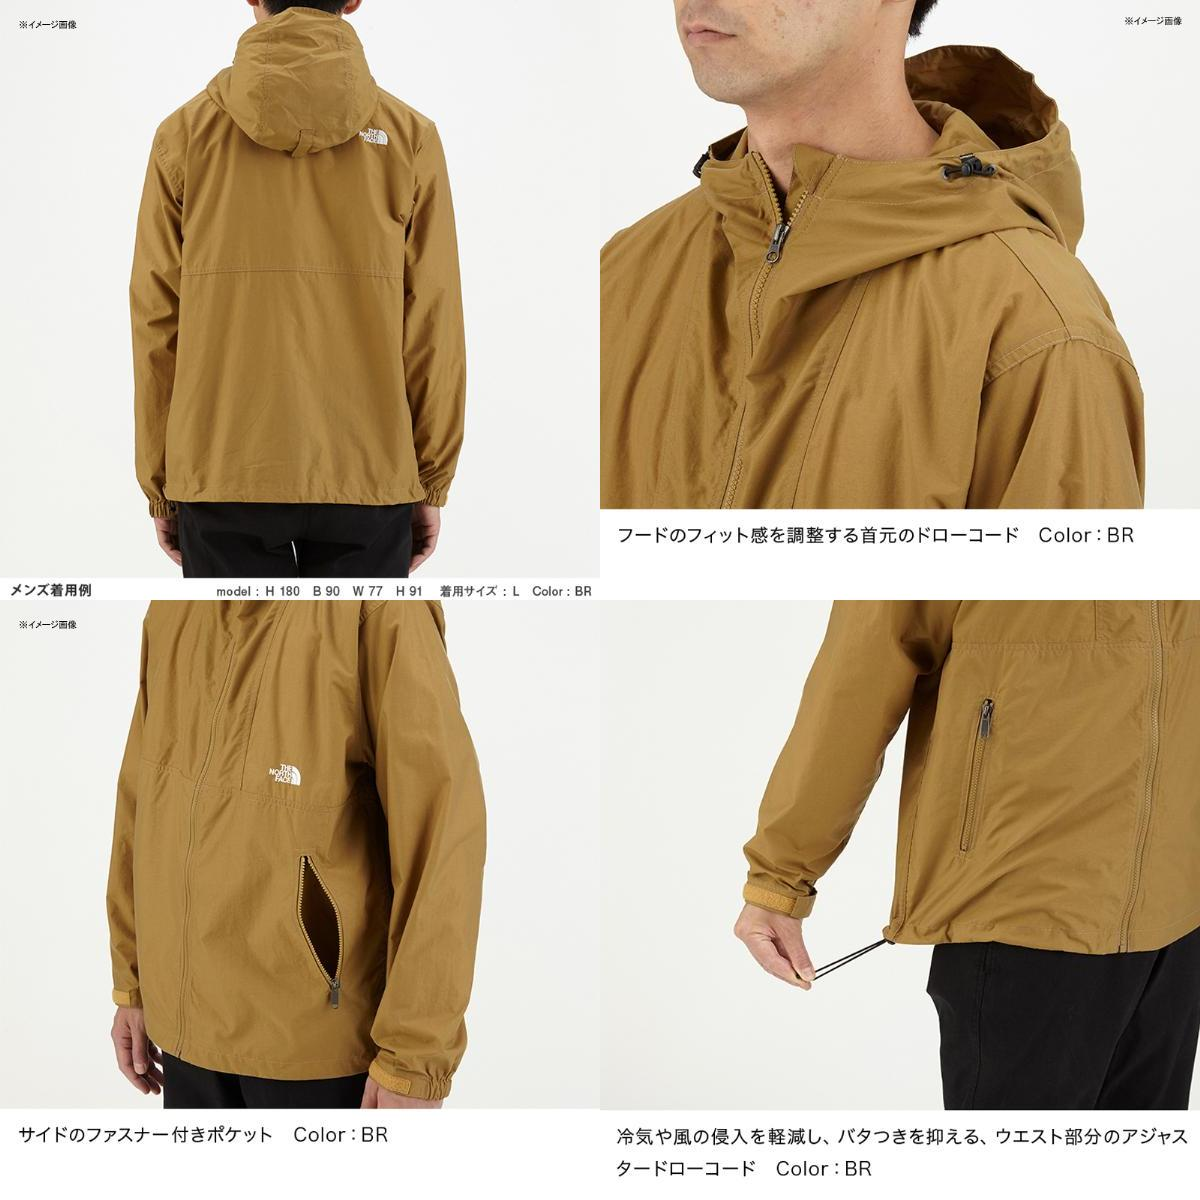 THE NORTH FACE(ザ・ノースフェイス) COMPACT JACKET(コンパクト ジャケット) Men's L FL NP71530